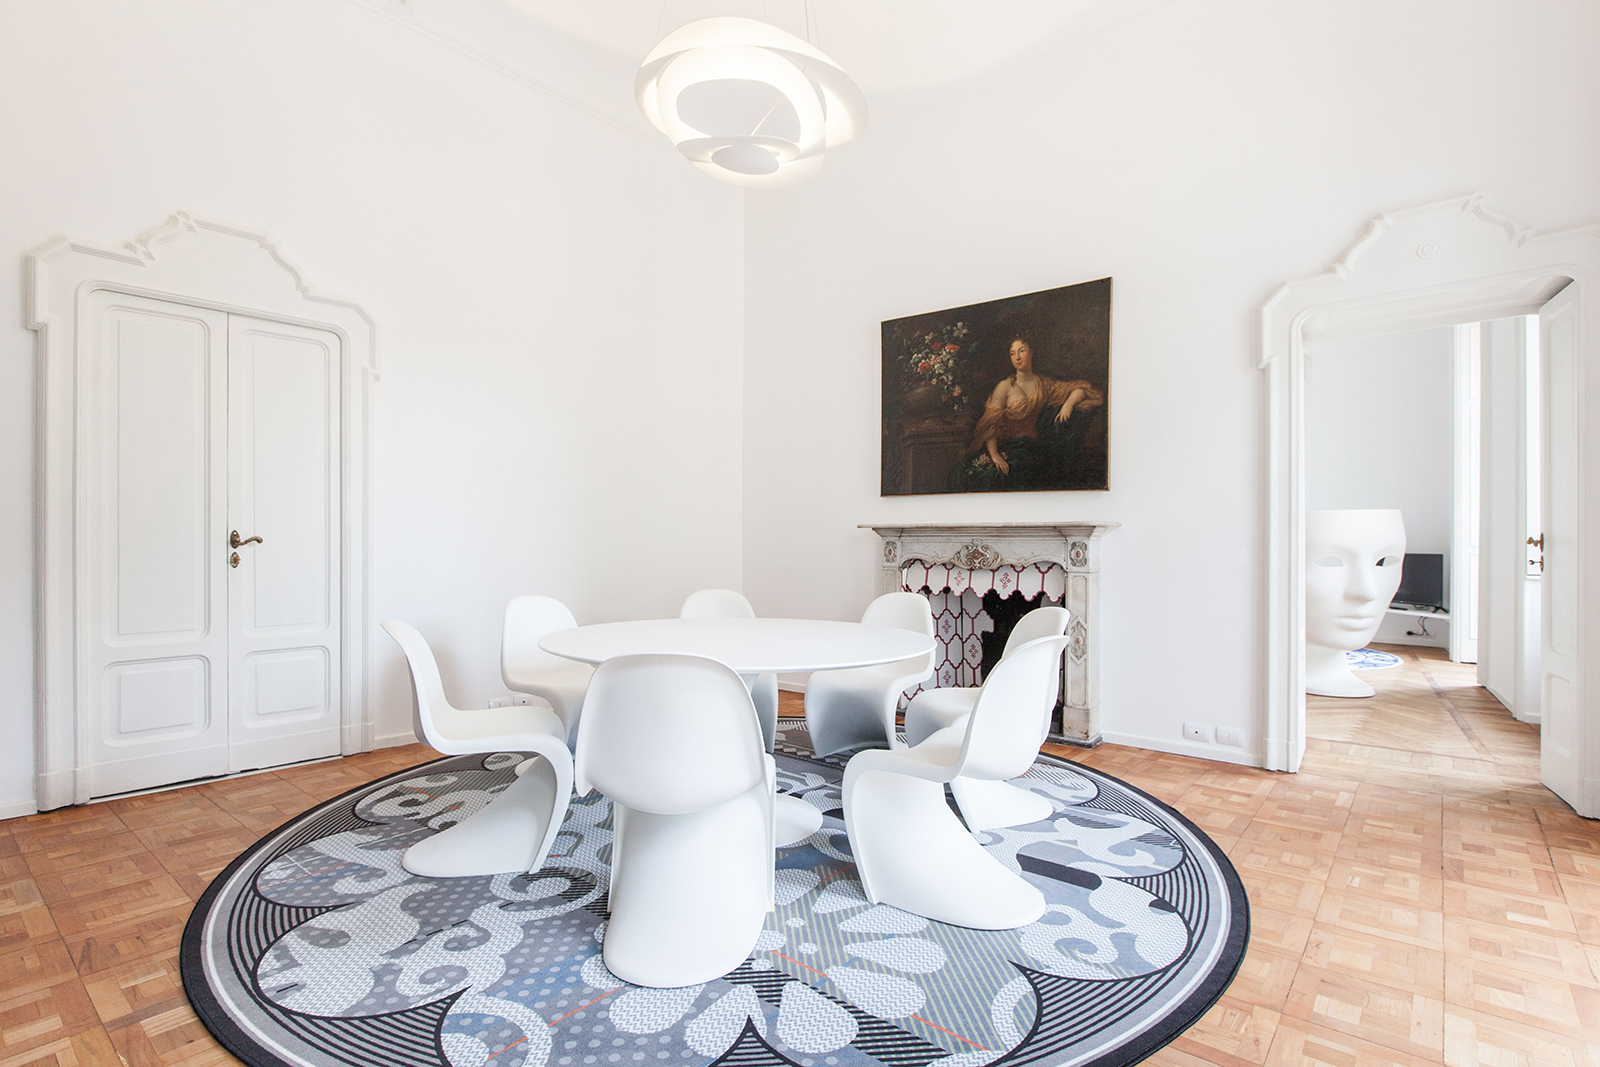 Milan Holiday Apartment For Rent In The Fashion District Courtesy Of Urlaubsarchitektur